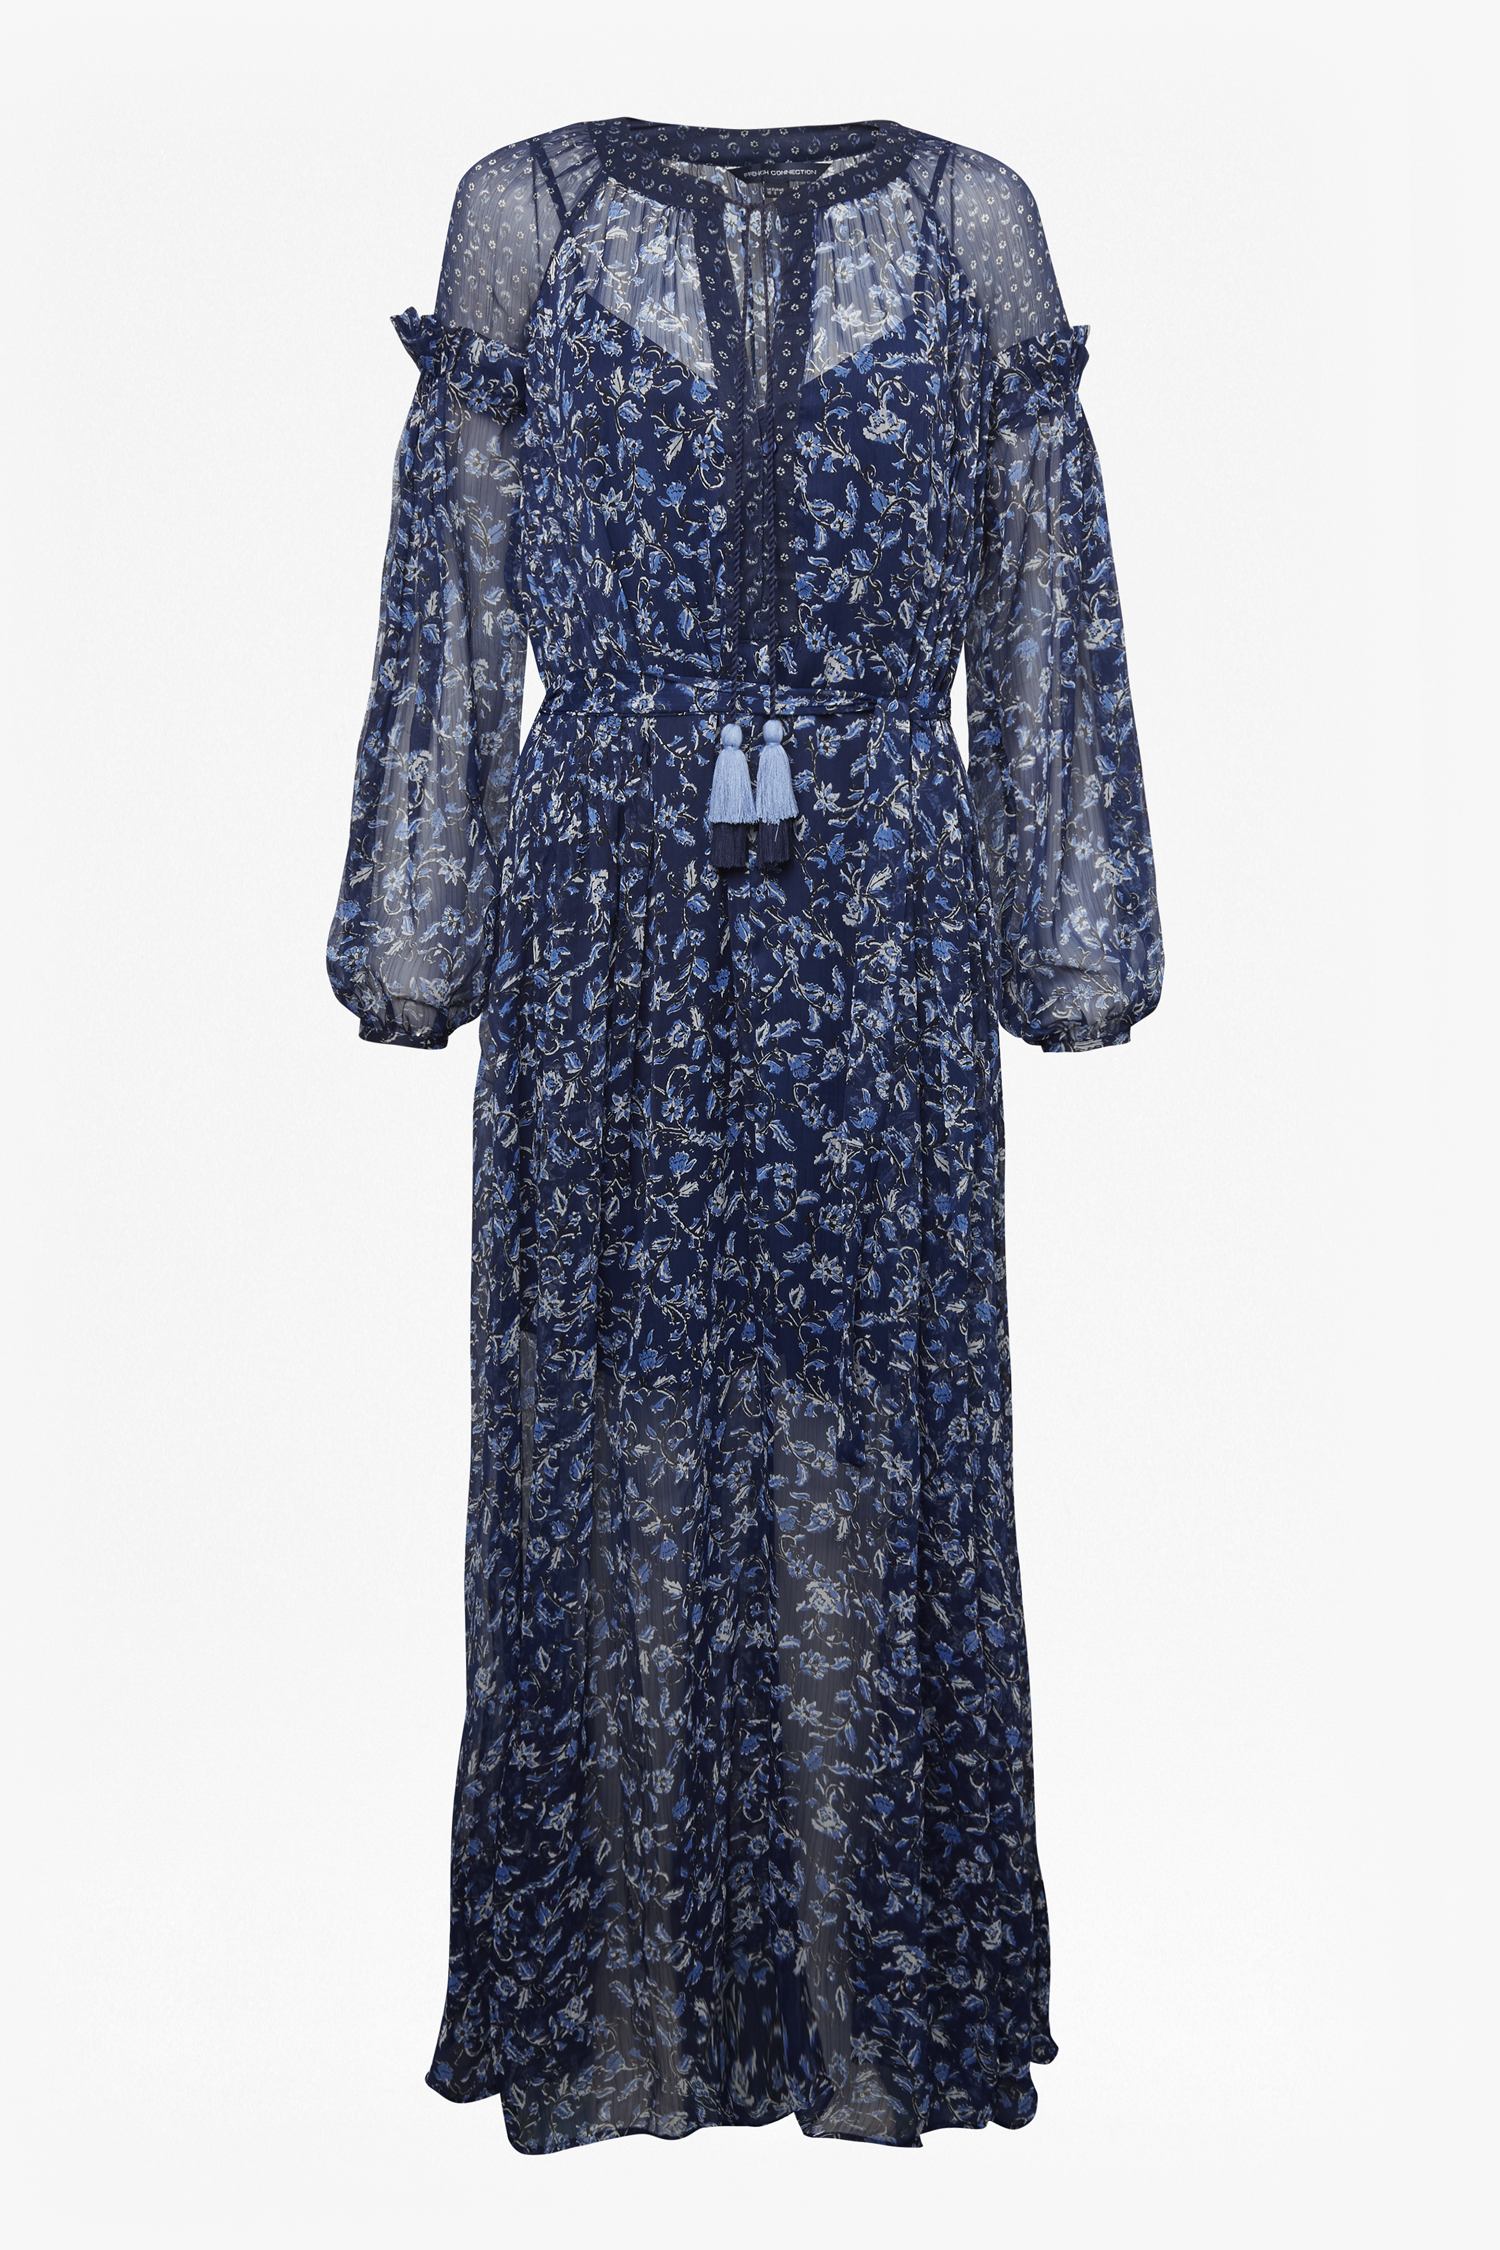 Savana Sheer Midi Folk Dress